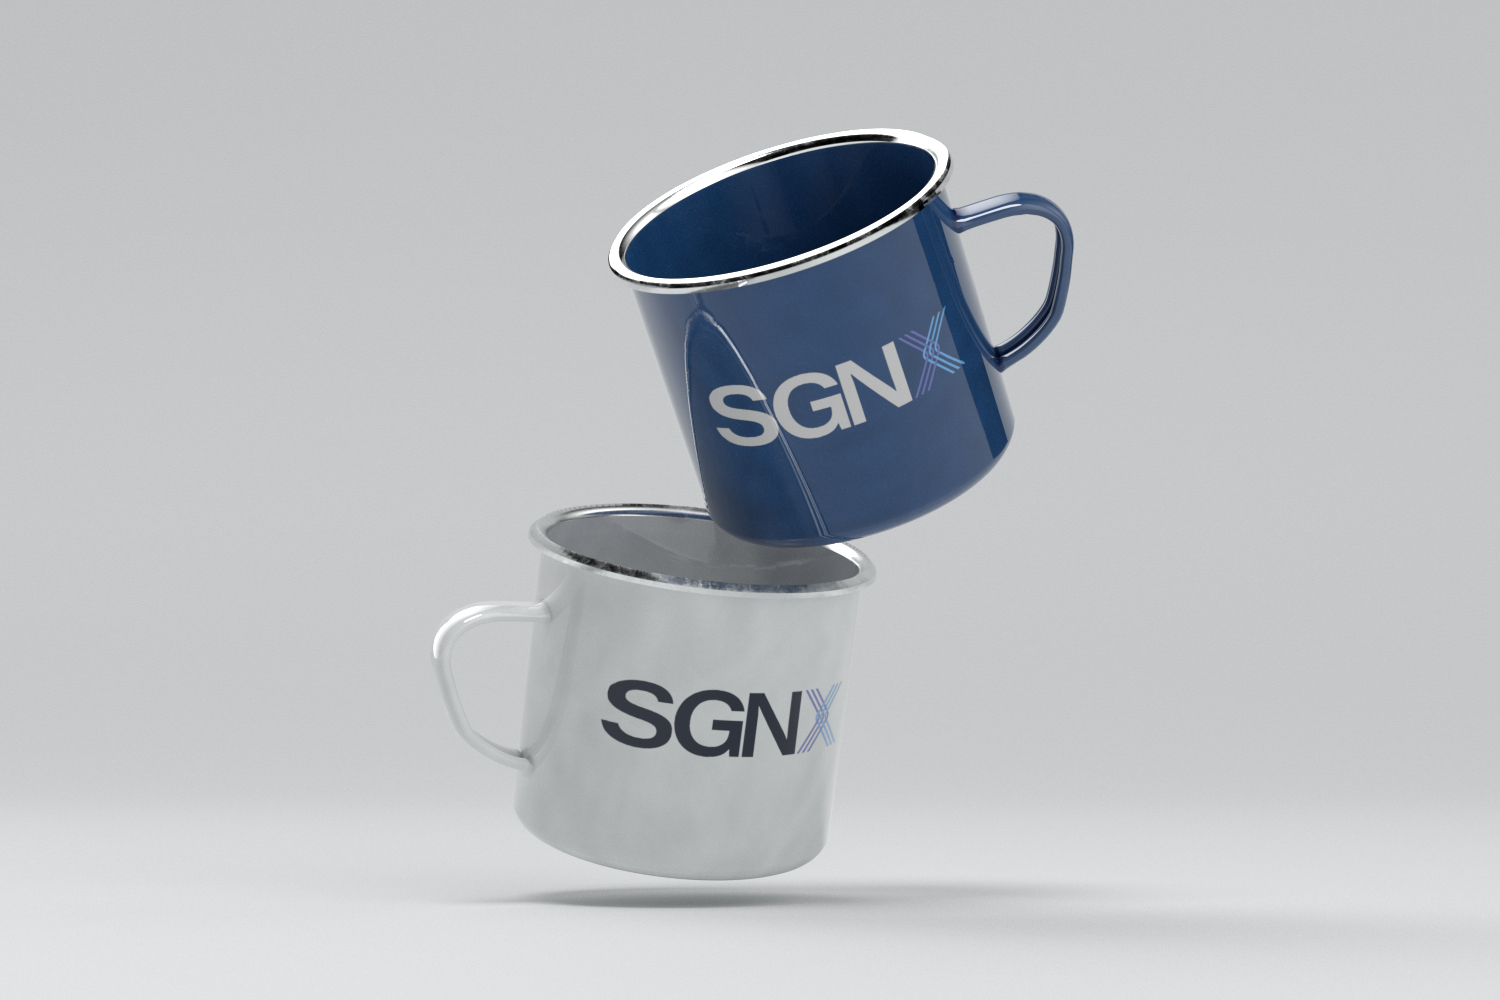 SGNX blue and white mugs